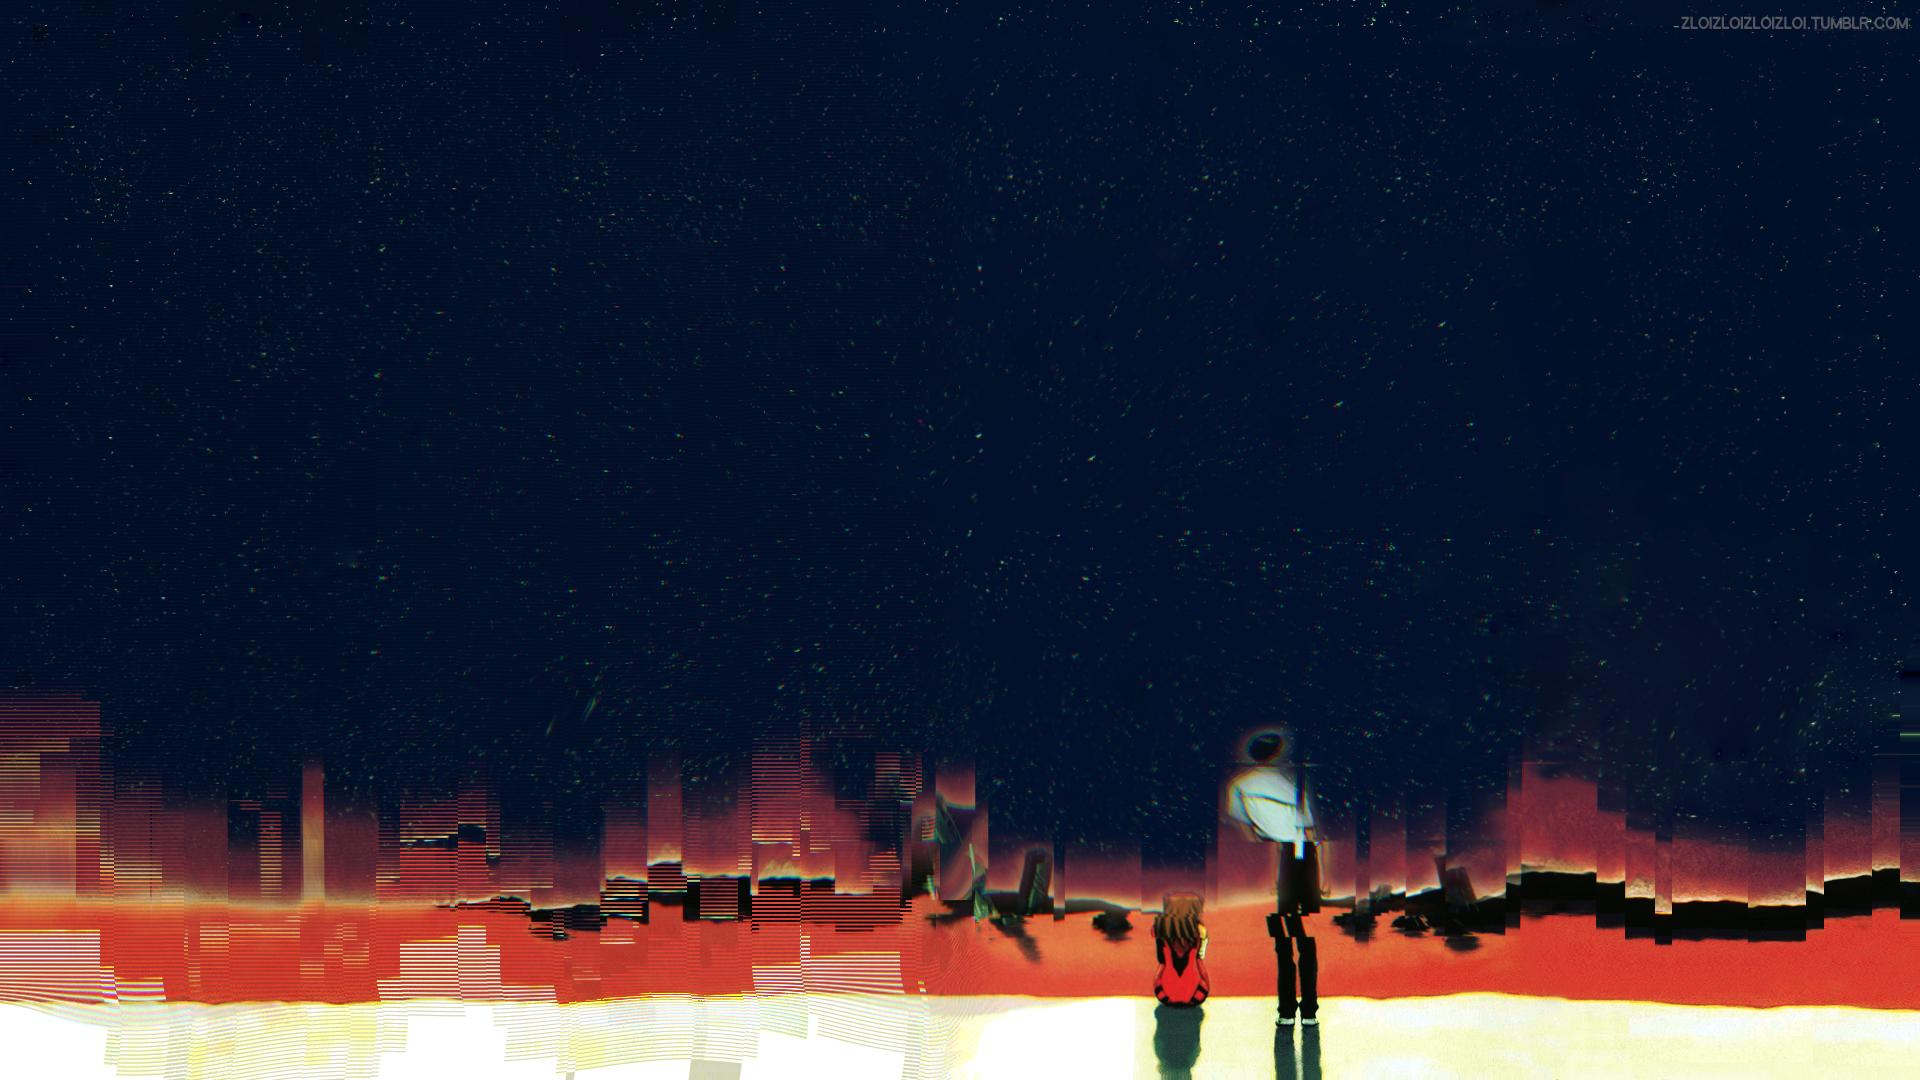 End of Evangelion Wallpapers - Top Free End of Evangelion ...